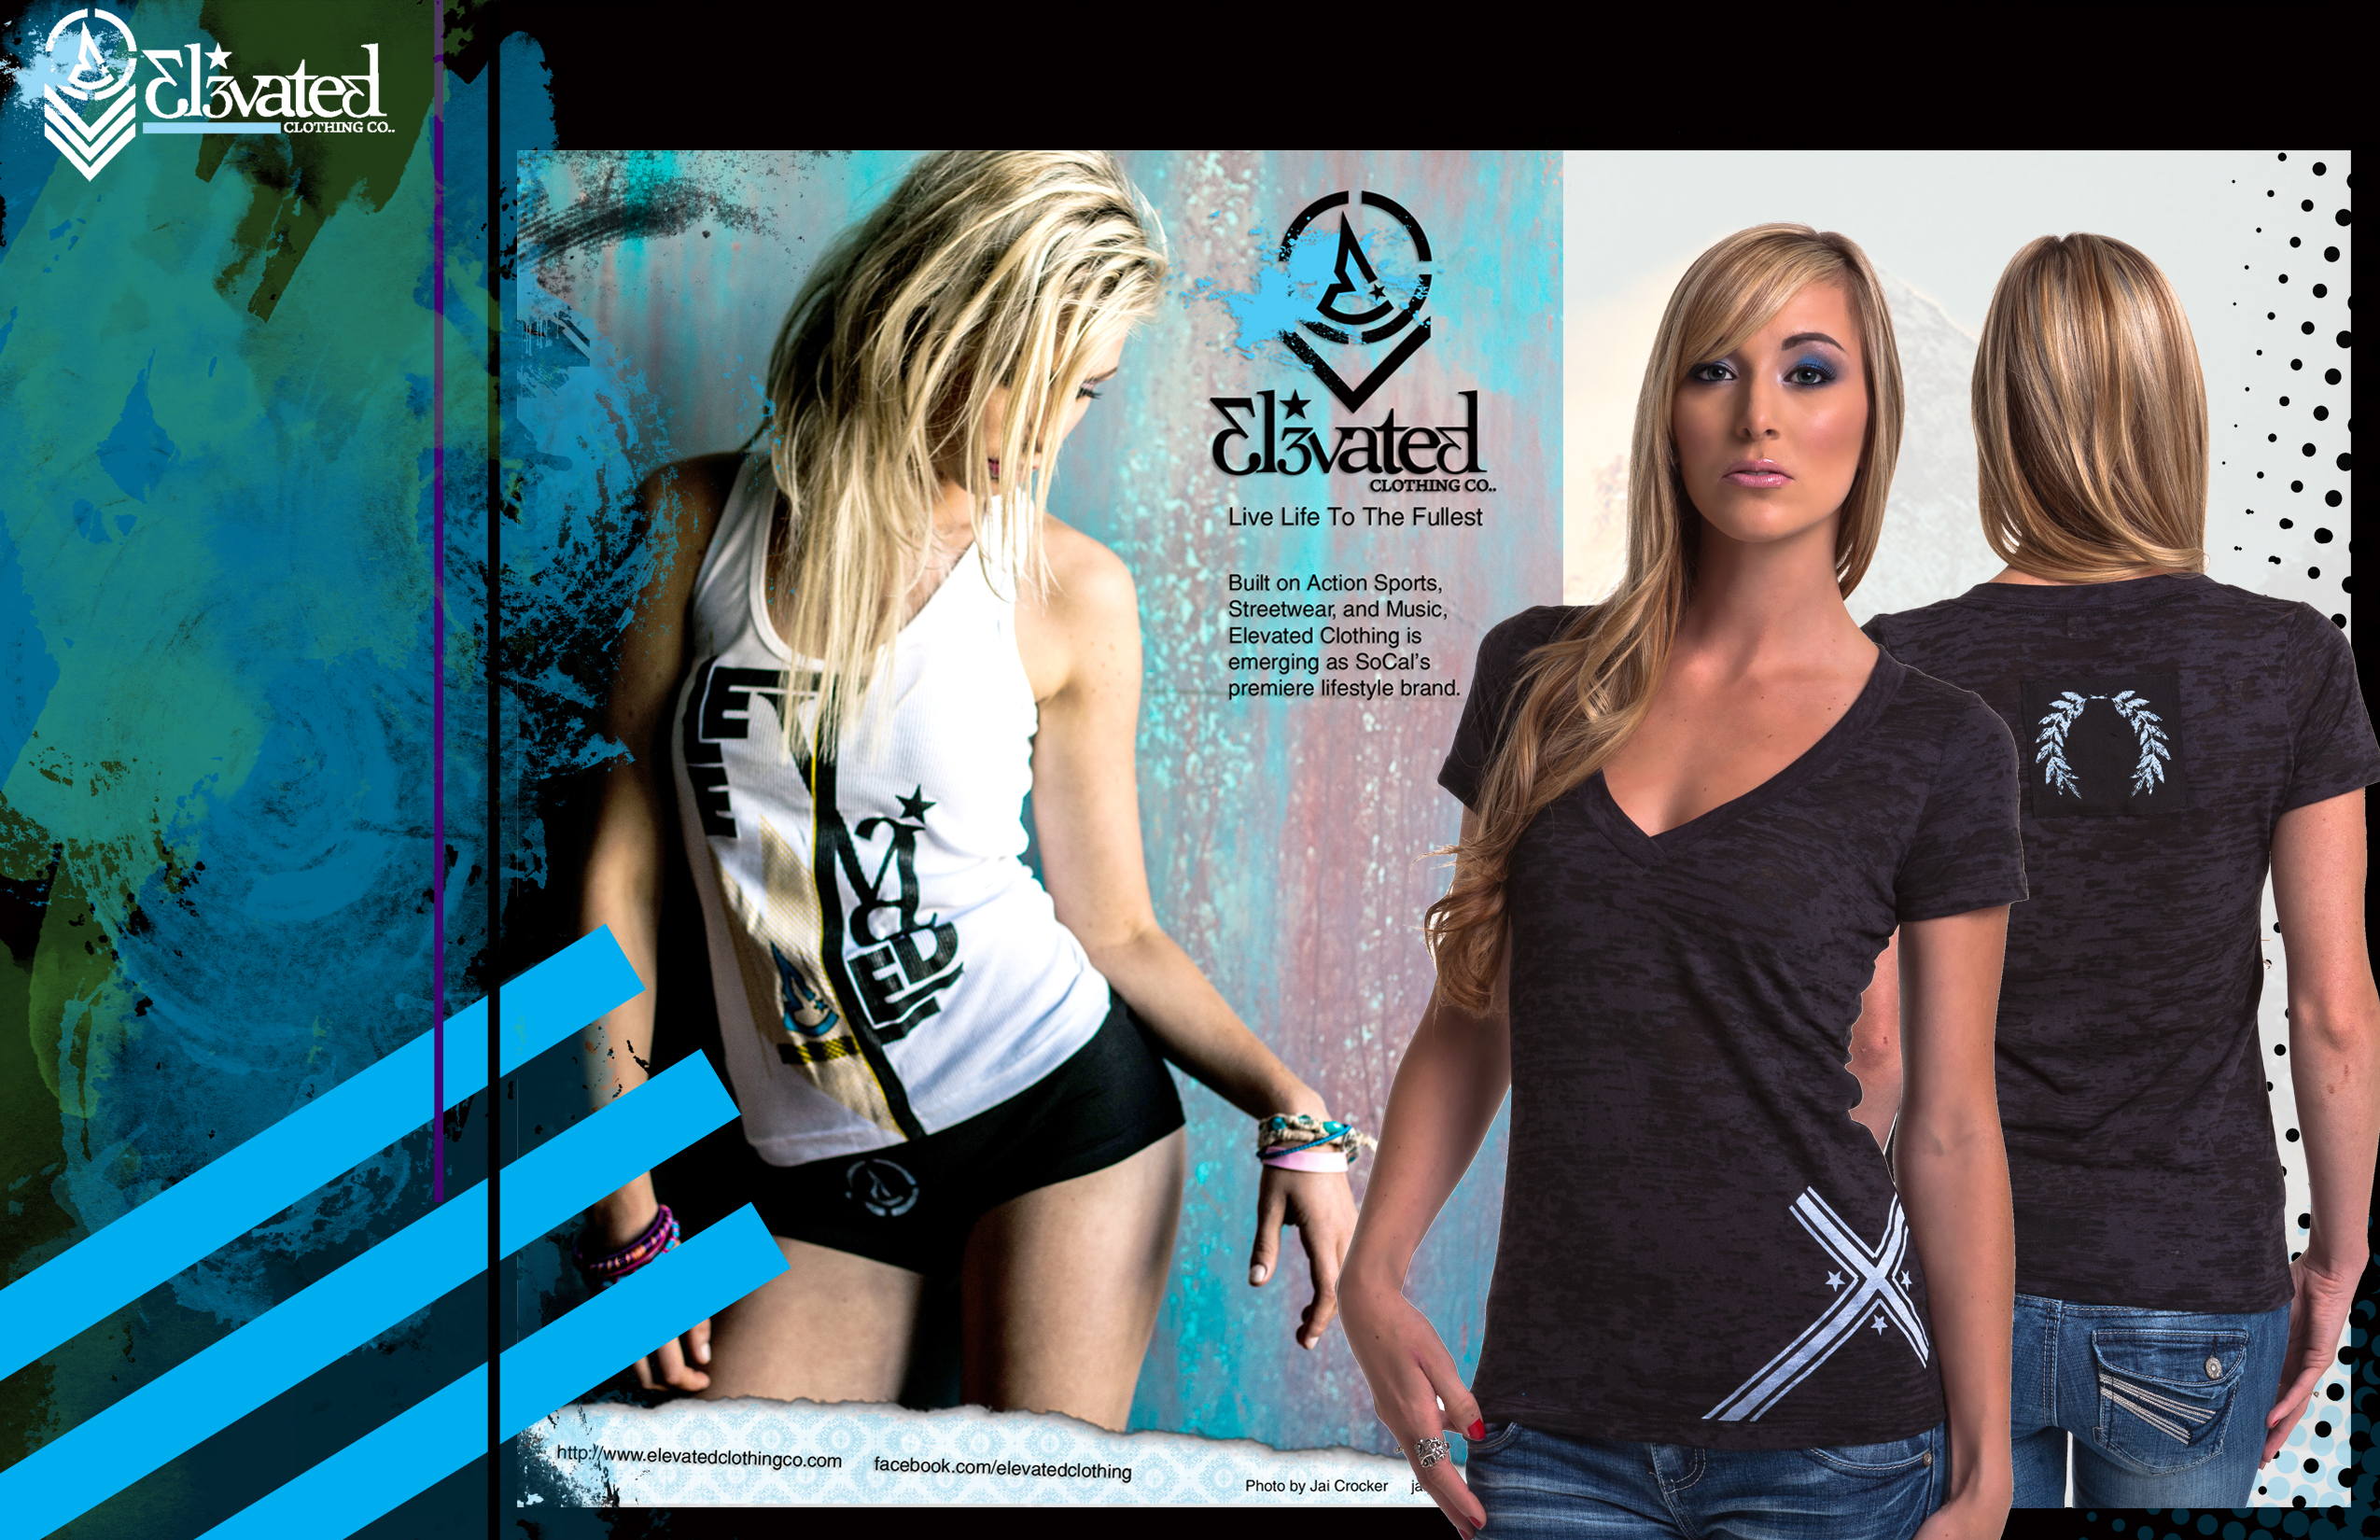 elevated clothing girls advertisement